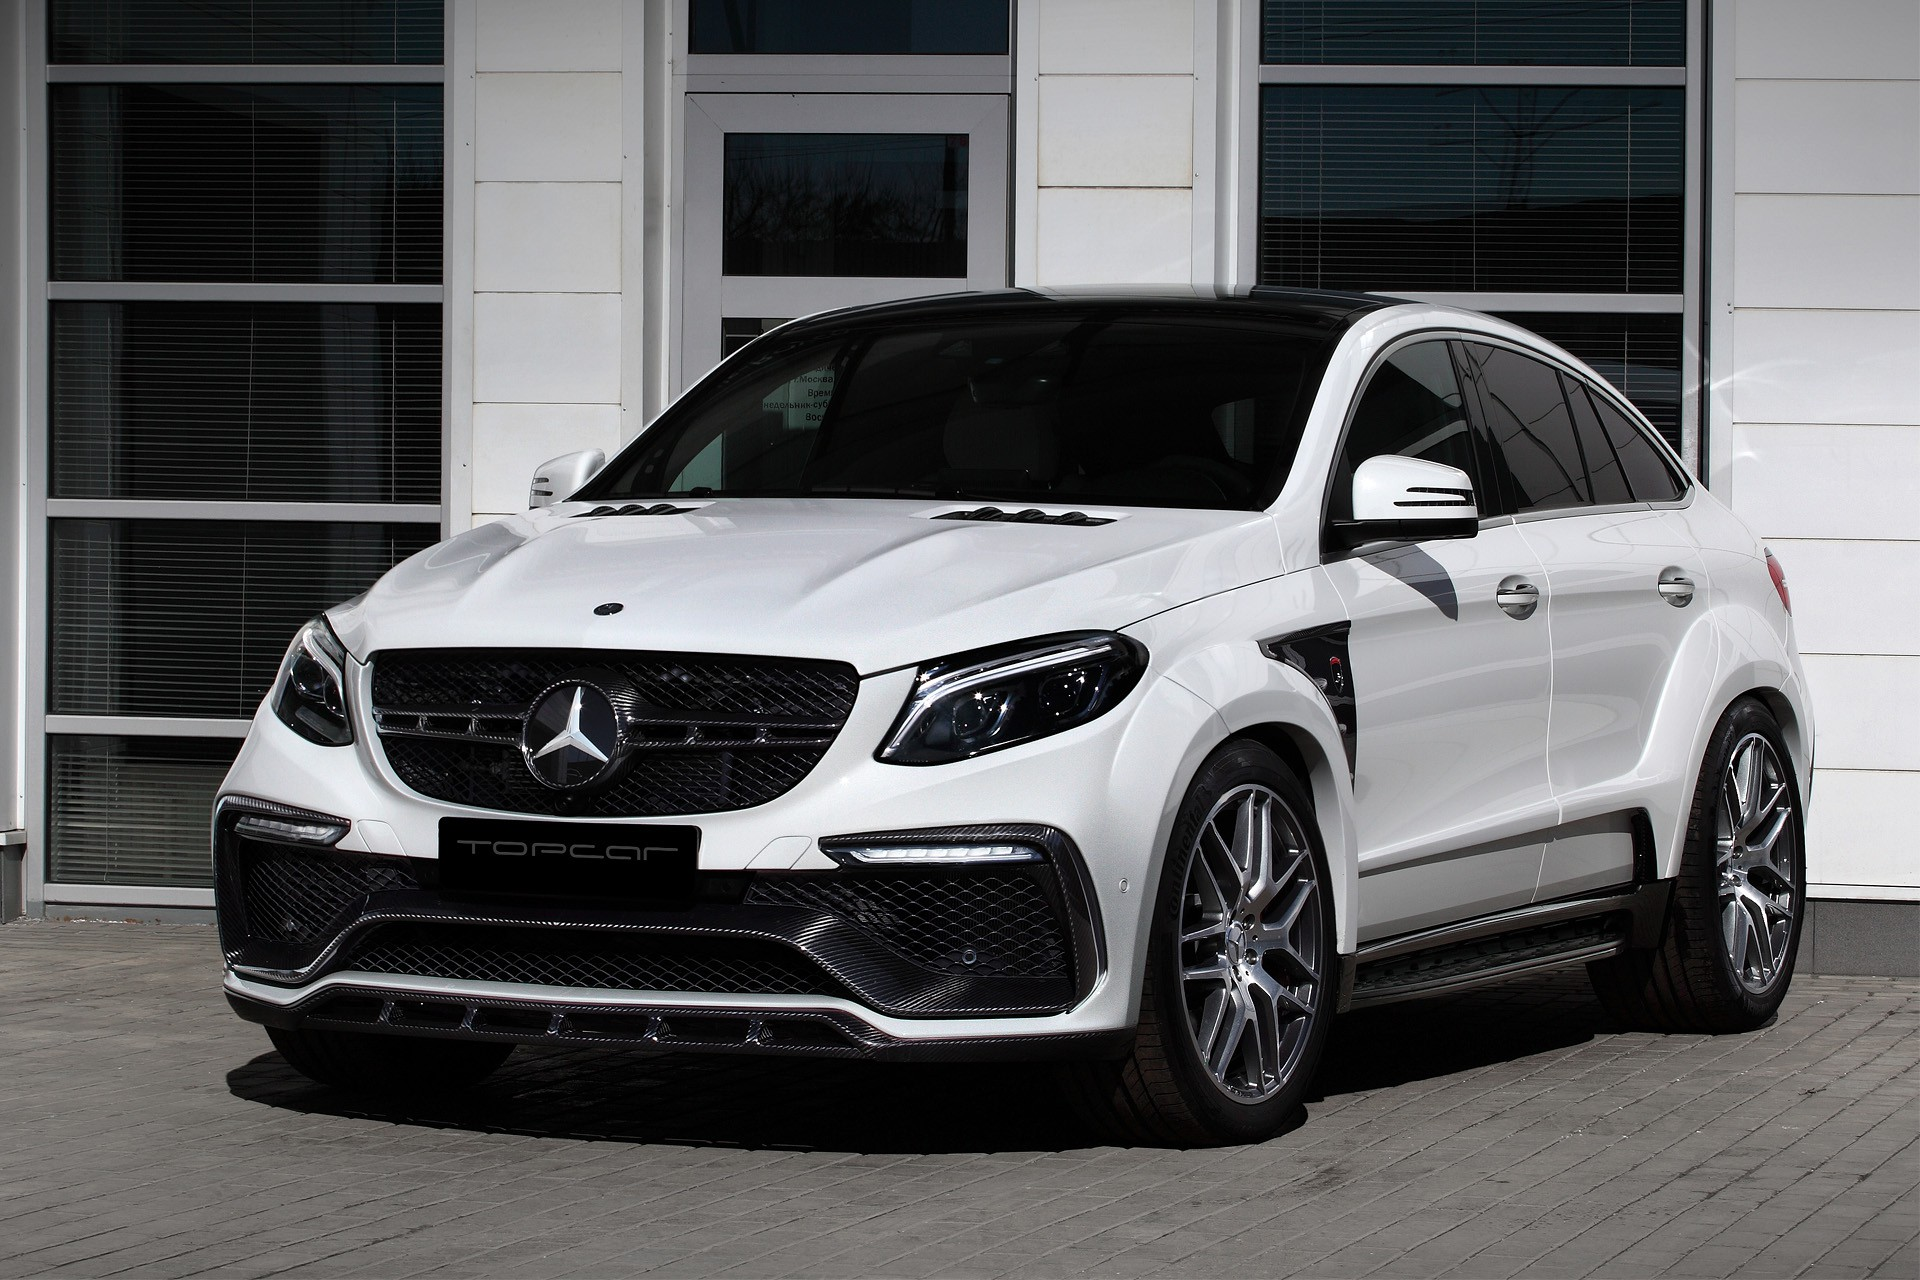 Mercedes benz gle coupe inferno white topcar for Mercedes benz range rover price